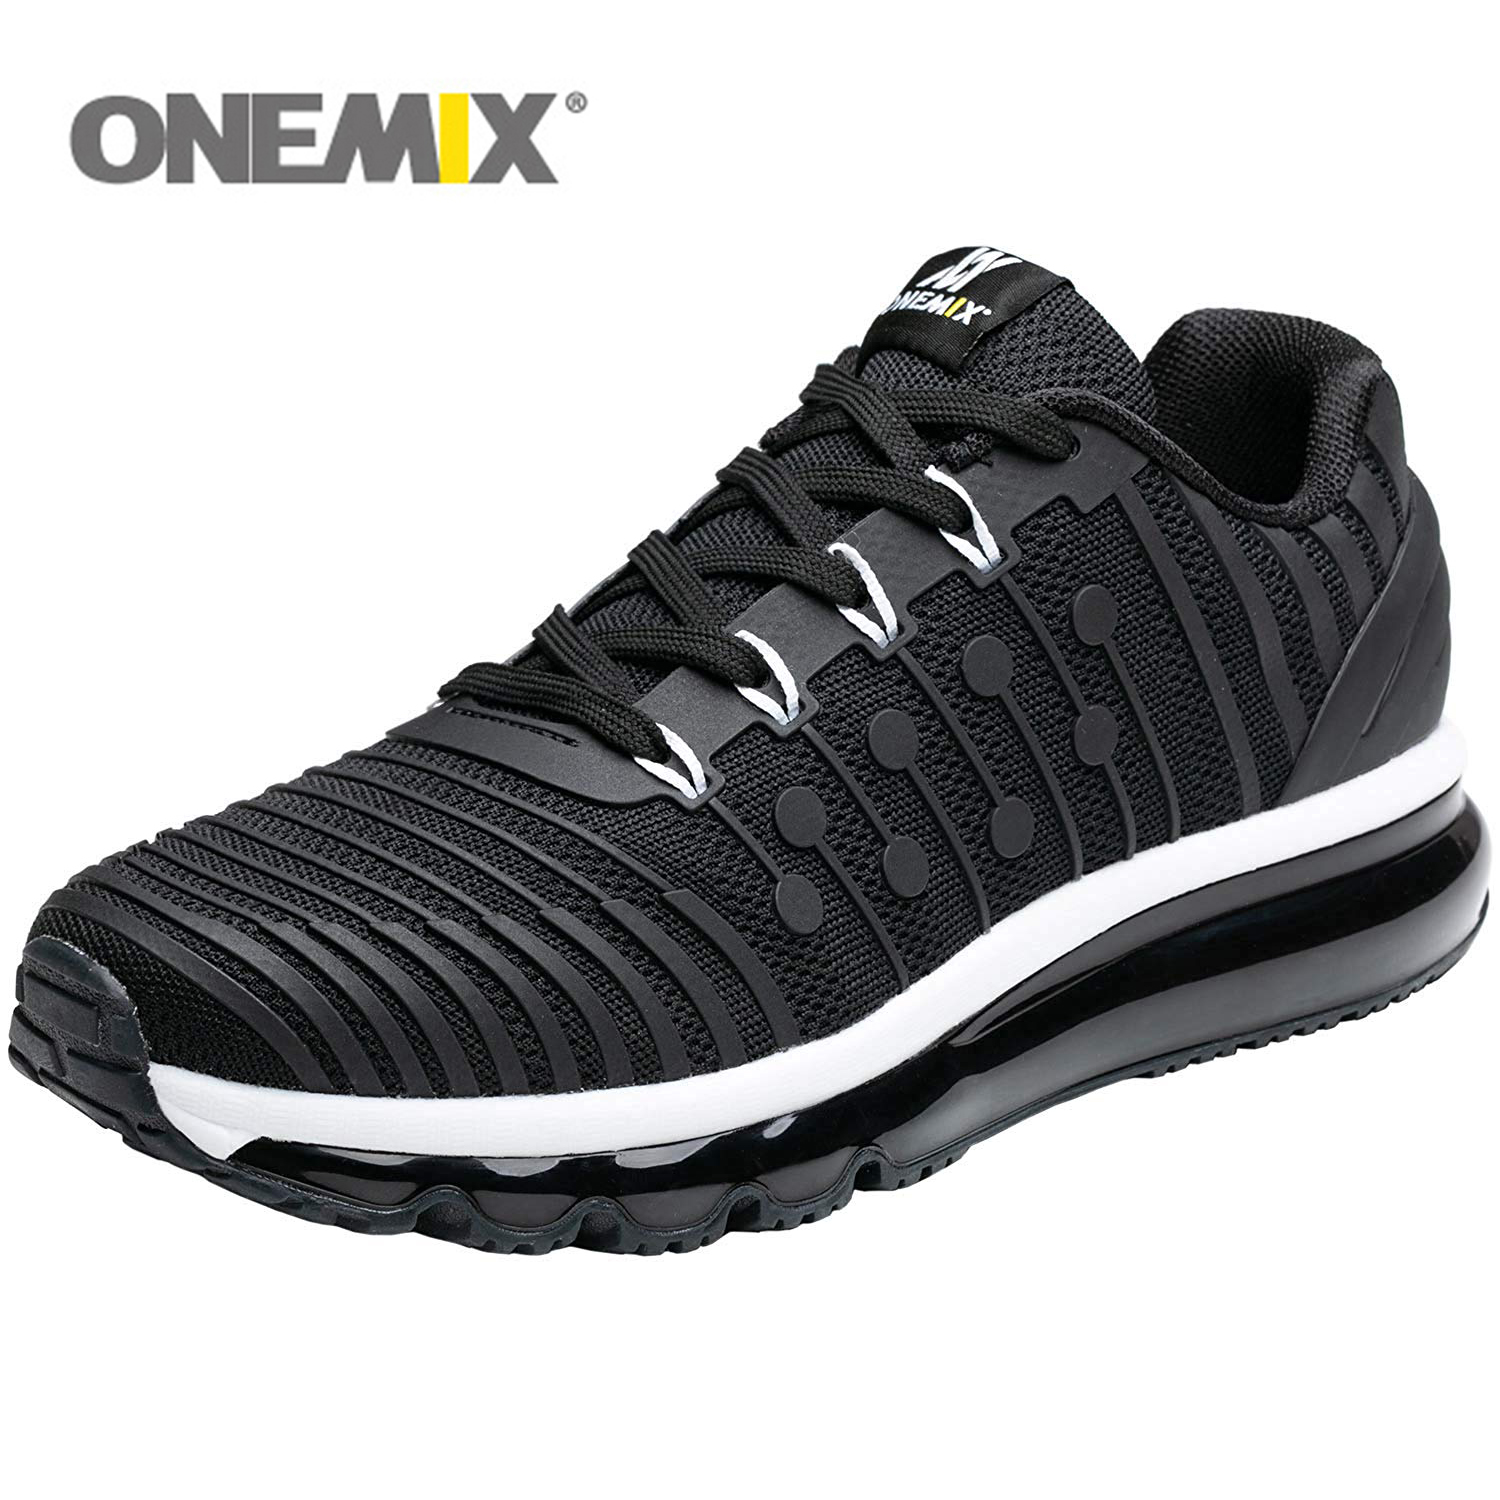 ONEMIX Men Trail Trainers Women Running Shoes  Air Cushion 97 KnItting Gym Fitness Outdoor Jogging Sneakers Max 12ONEMIX Men Trail Trainers Women Running Shoes  Air Cushion 97 KnItting Gym Fitness Outdoor Jogging Sneakers Max 12